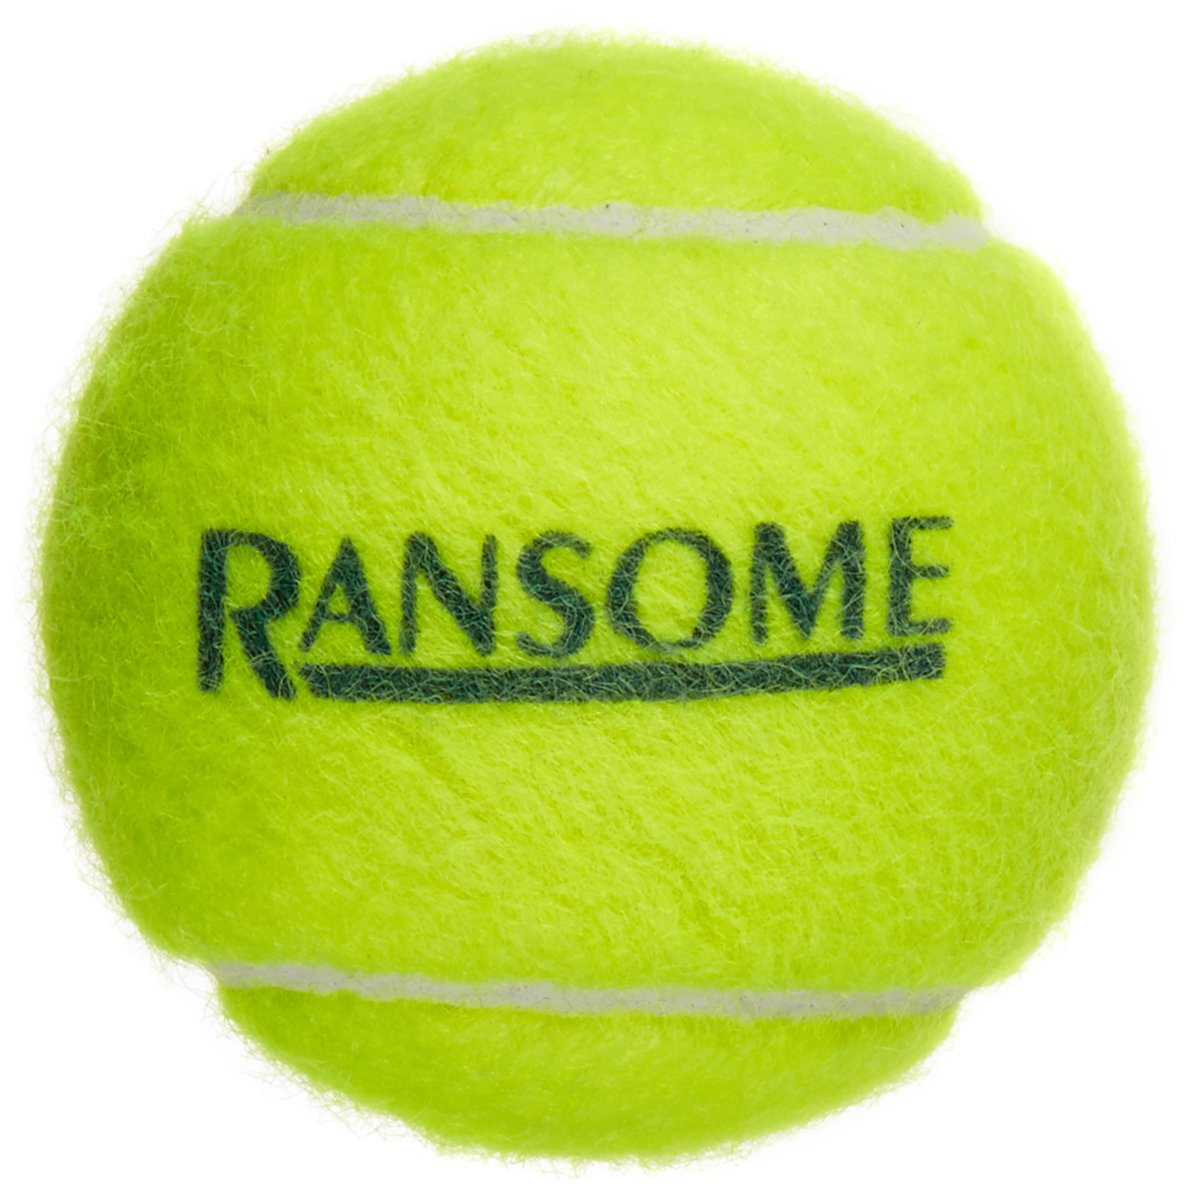 Ransome Tennis Balls (Pack of 12) Ransome Sporting Goods 7409